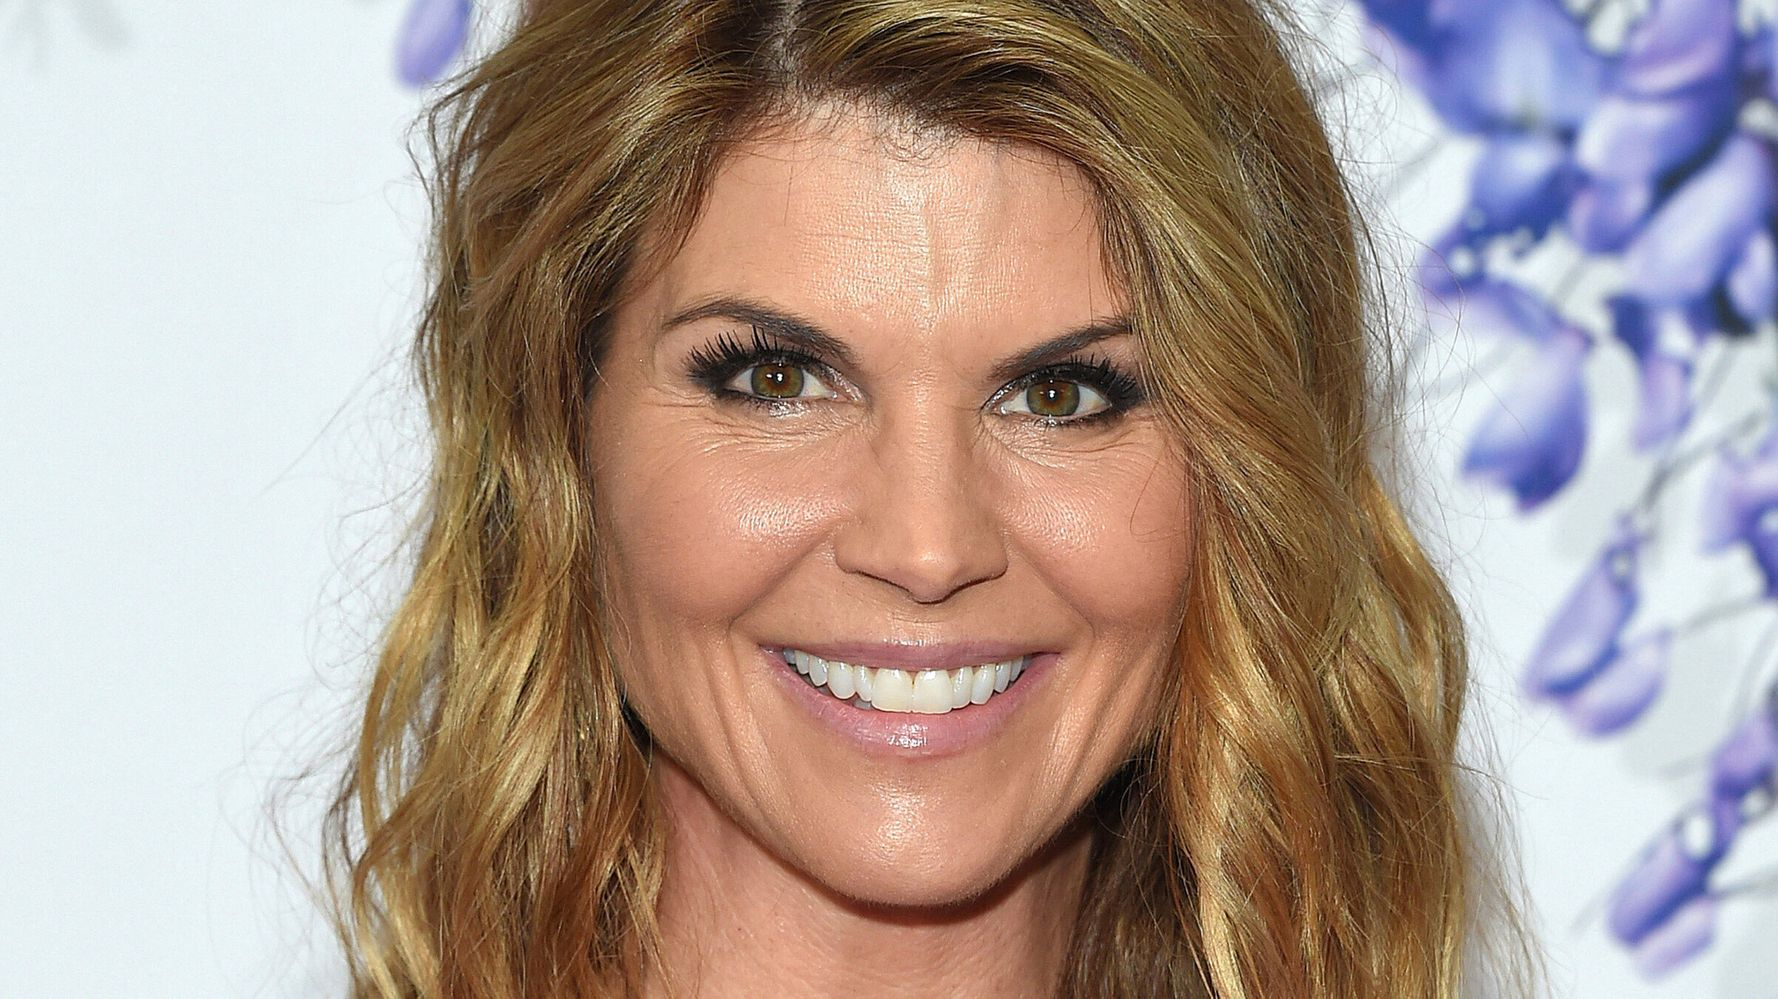 Lori Loughlin Begins 2-Month Prison Term For College Scam